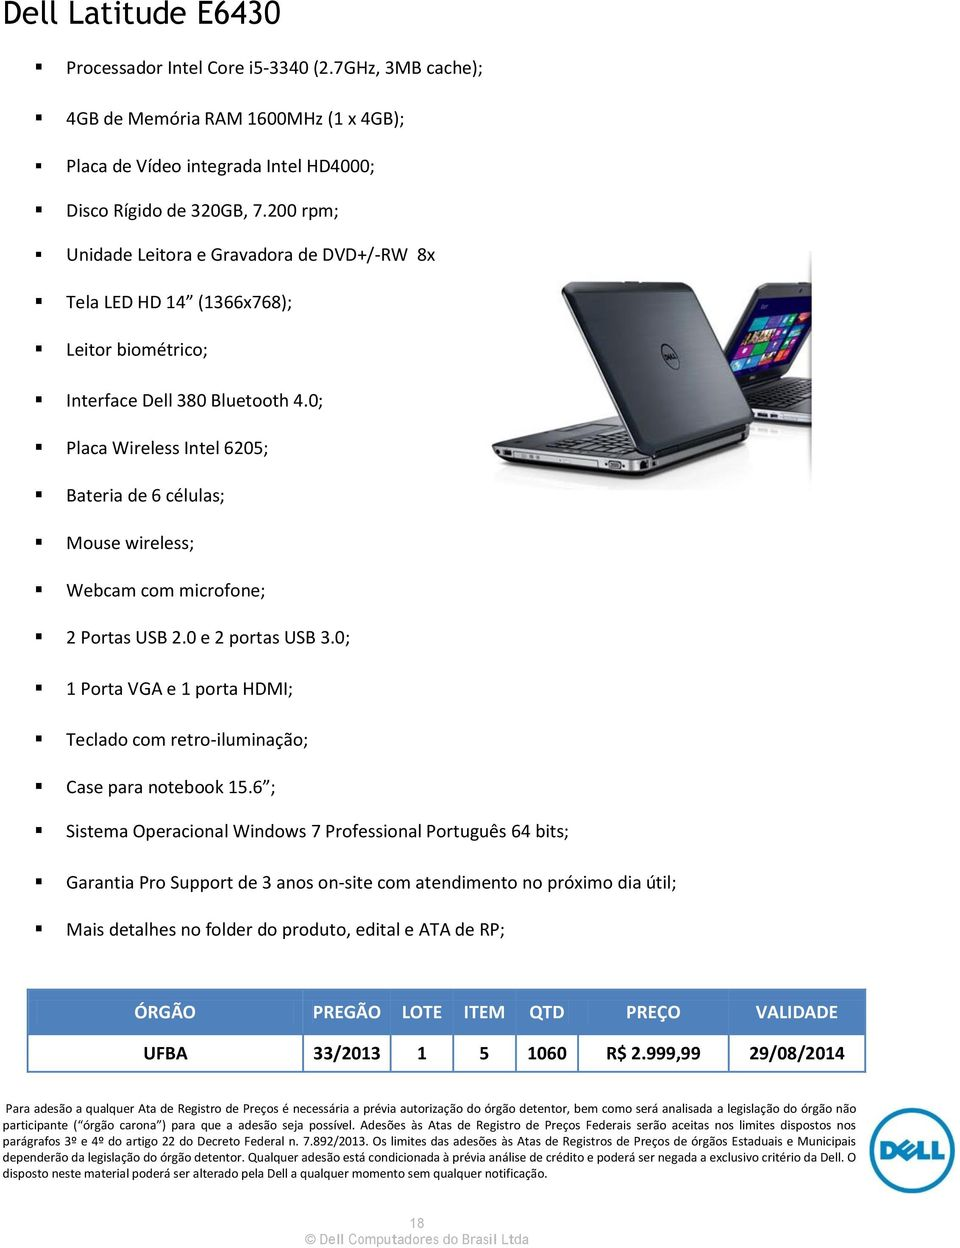 0; Placa Wireless Intel 6205; Bateria de 6 células; Mouse wireless; Webcam com microfone; 2 Portas USB 2.0 e 2 portas USB 3.